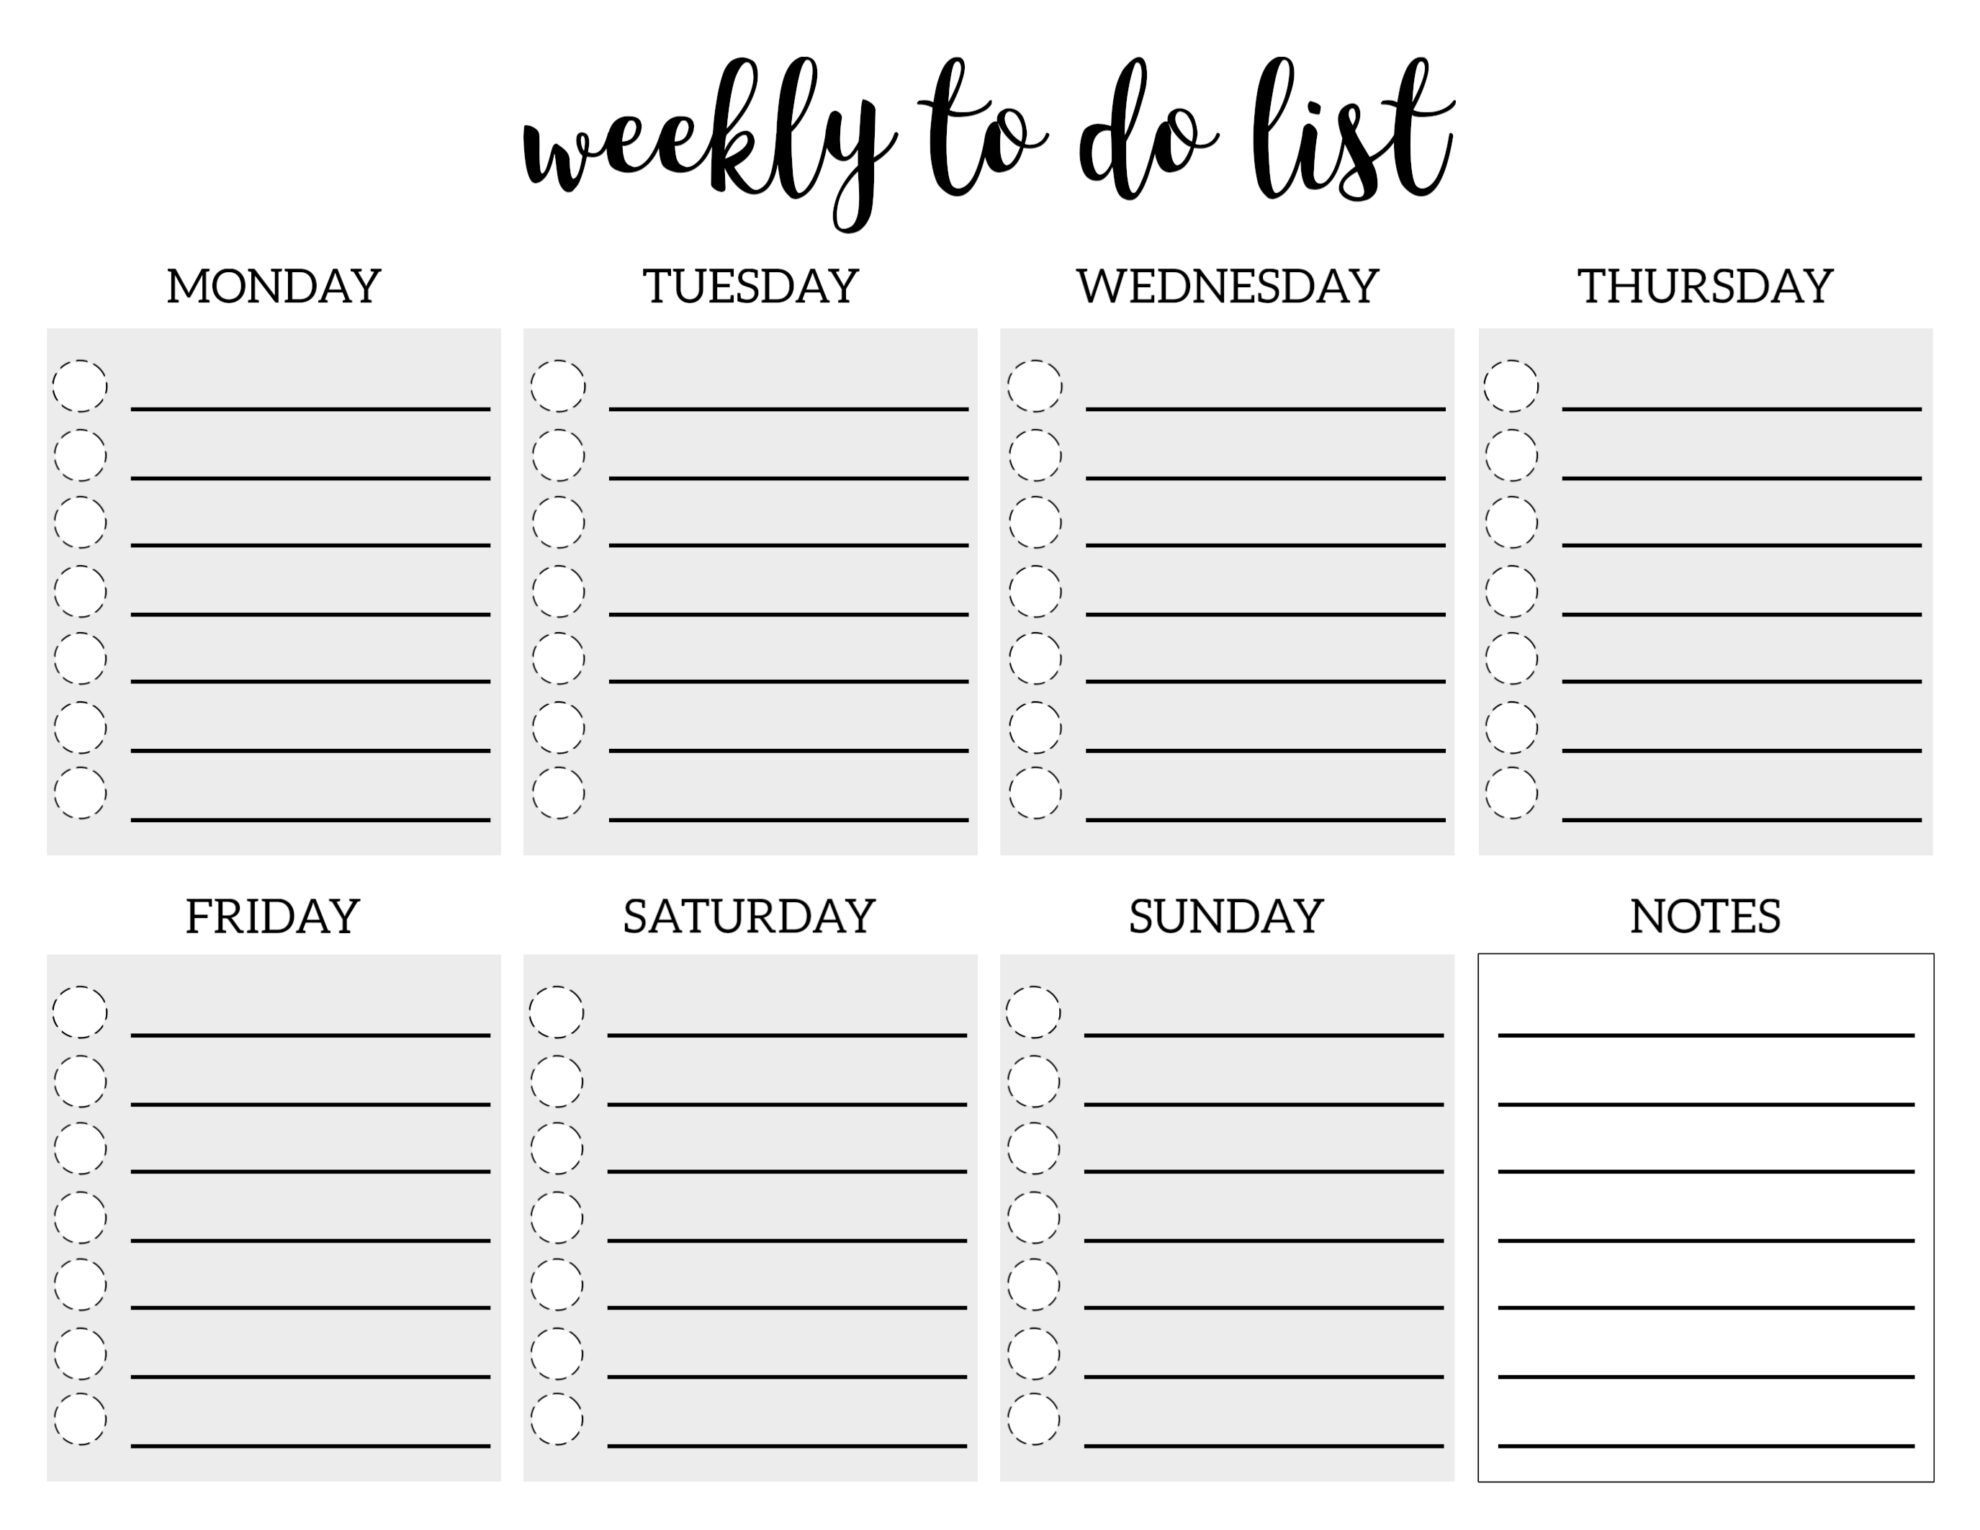 Weekly To Do List Printable Checklist Template  Paper Trail with regard to Printable Blank Checklist